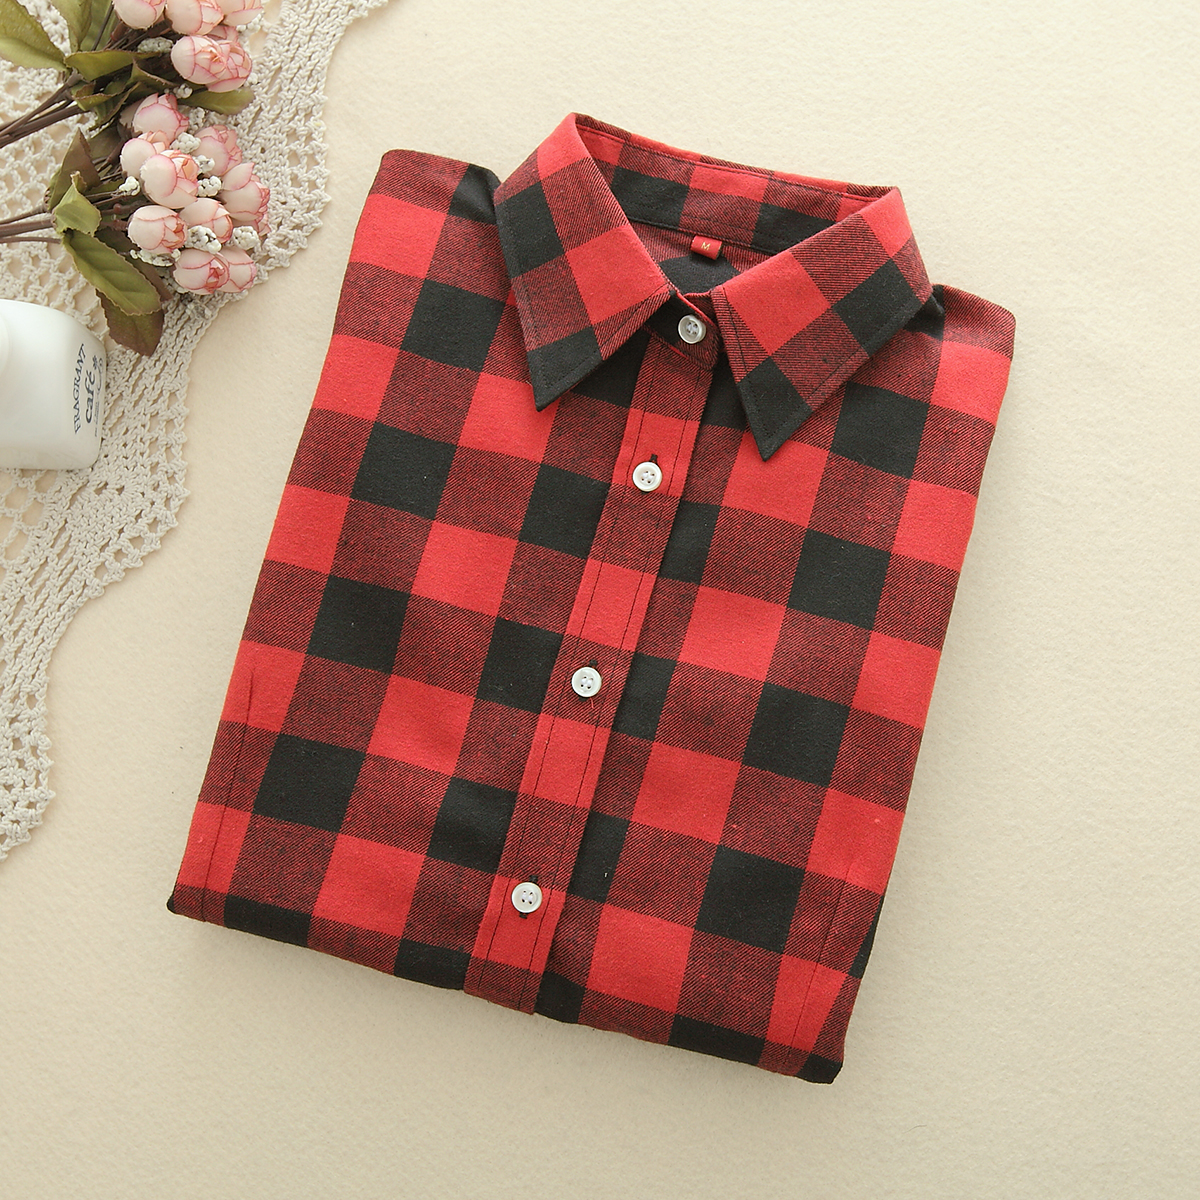 2019 Fashion Plaid Shirt Female College Style Women's Blouses Long Sleeve Flannel Shirt Plus Size Cotton Blusas Office Tops